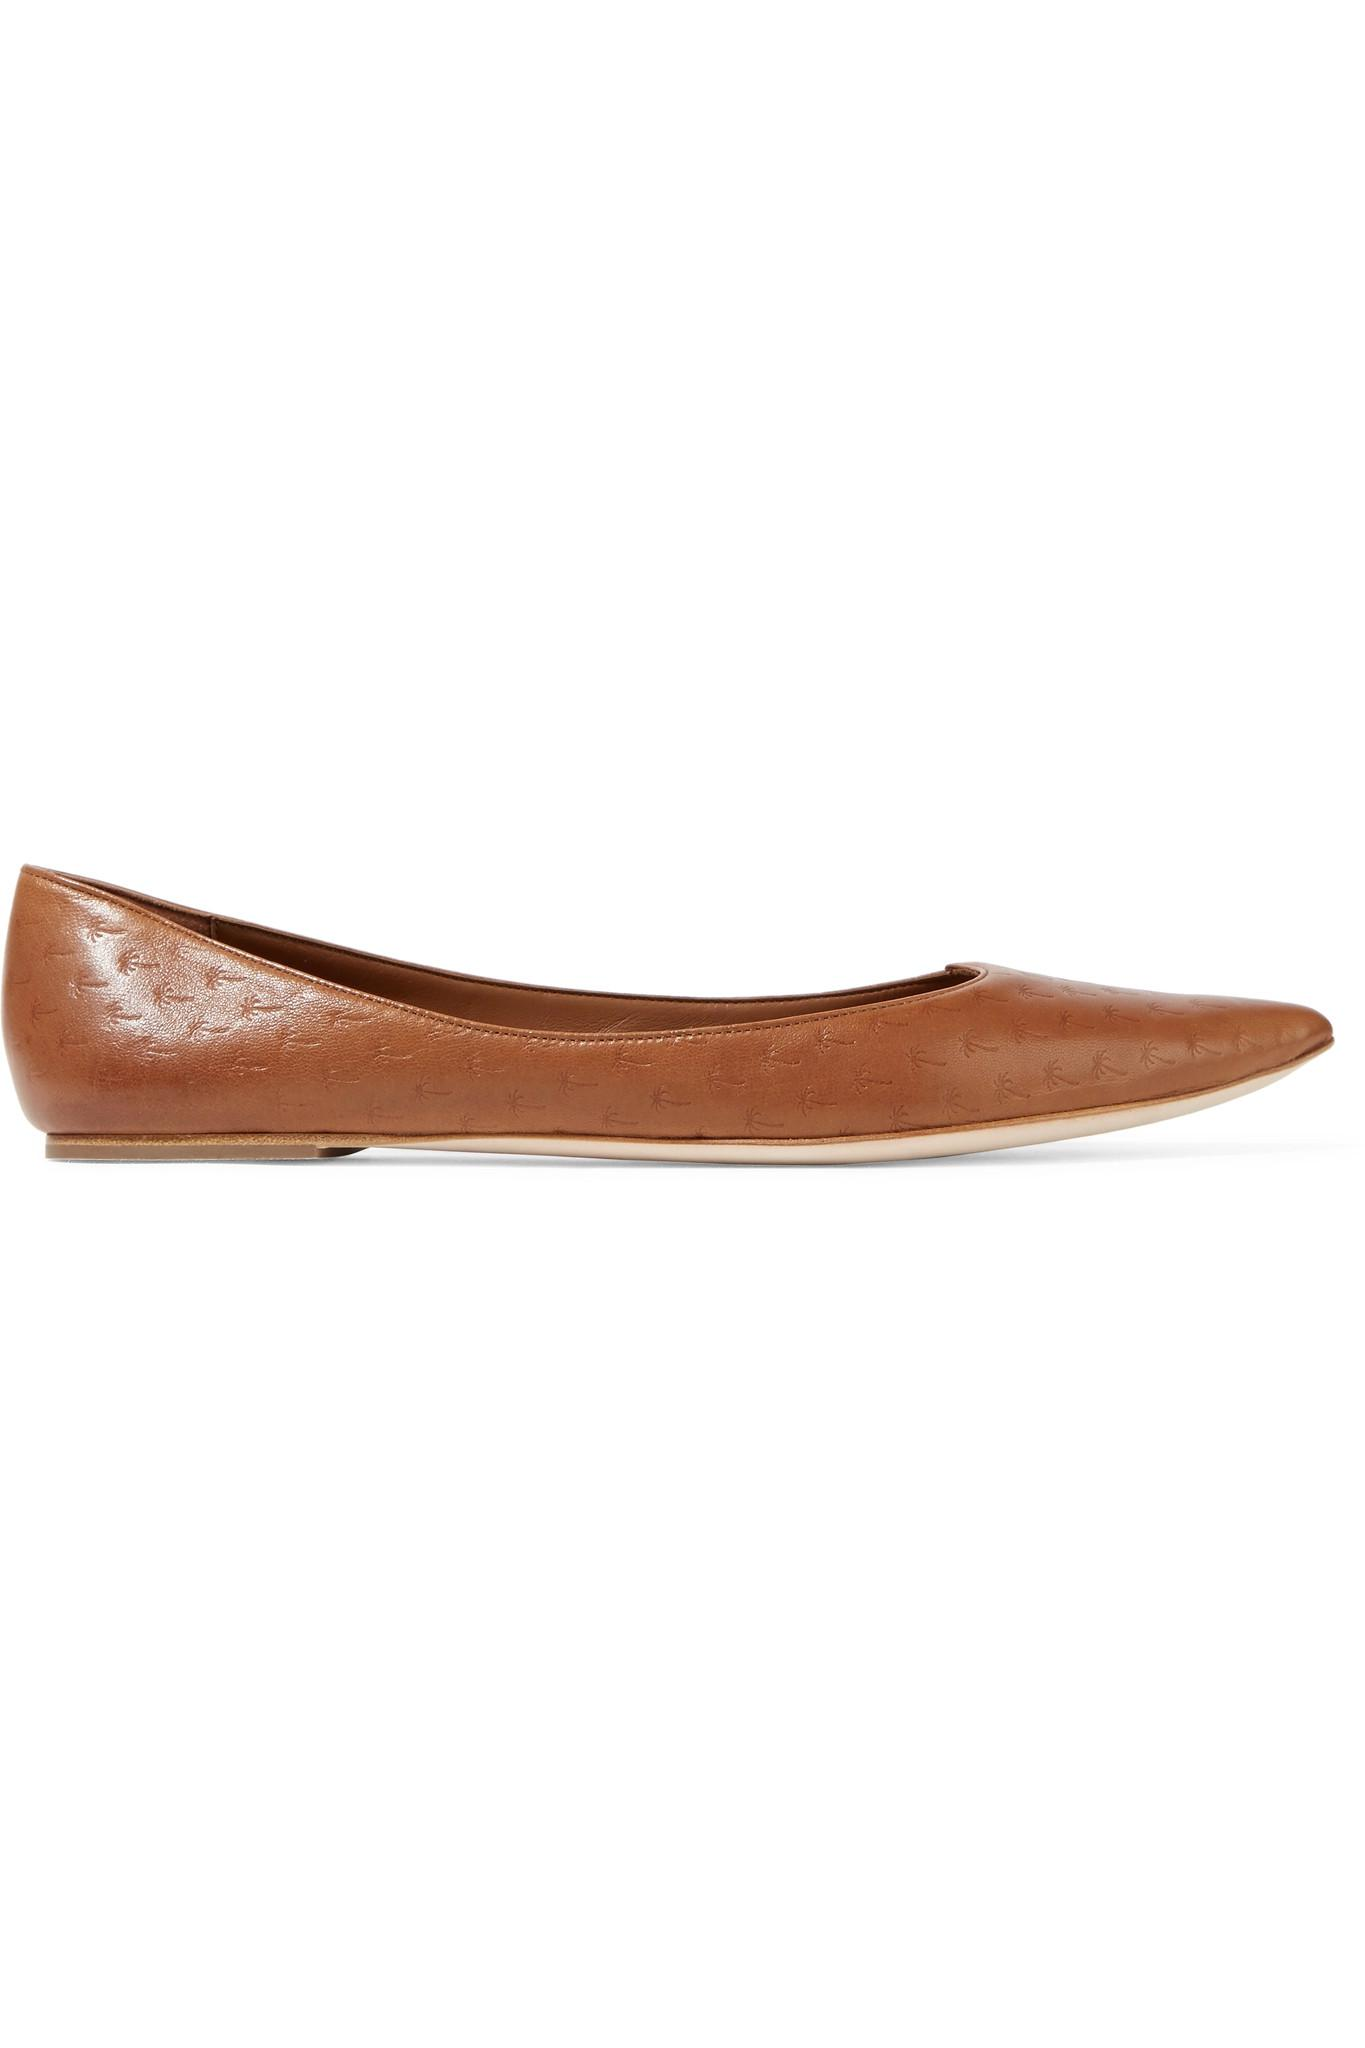 huge surprise sale online Tomas Maier Patent Leather Pointed Flats best store to get 2015 new for sale 8uxkLH